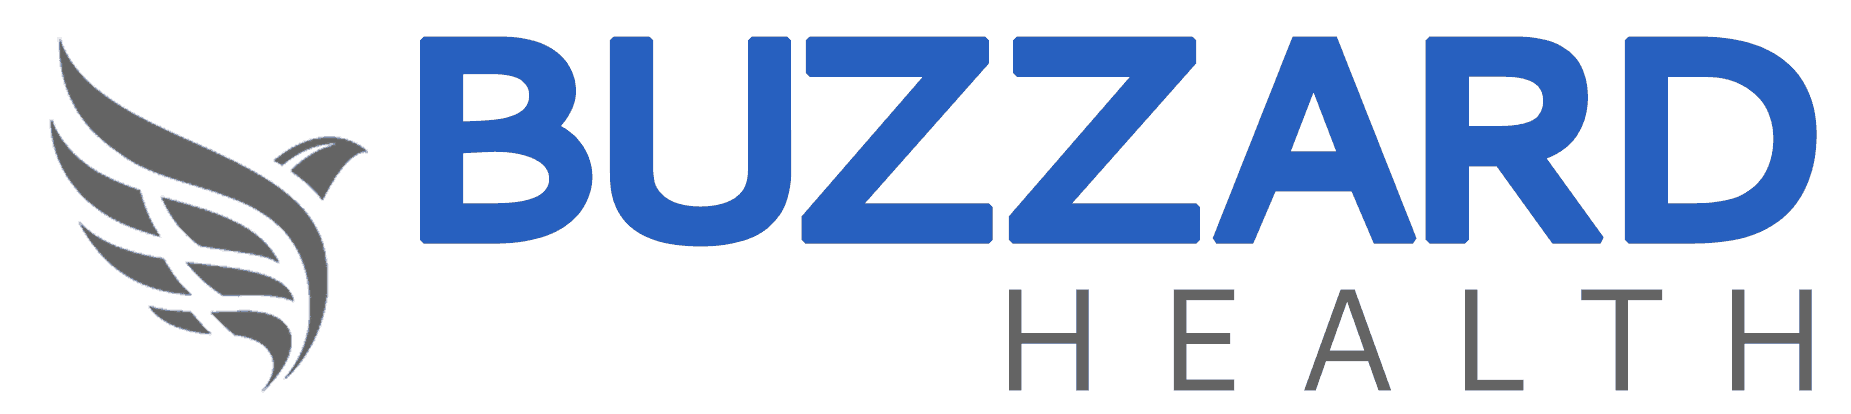 Buzzard Health